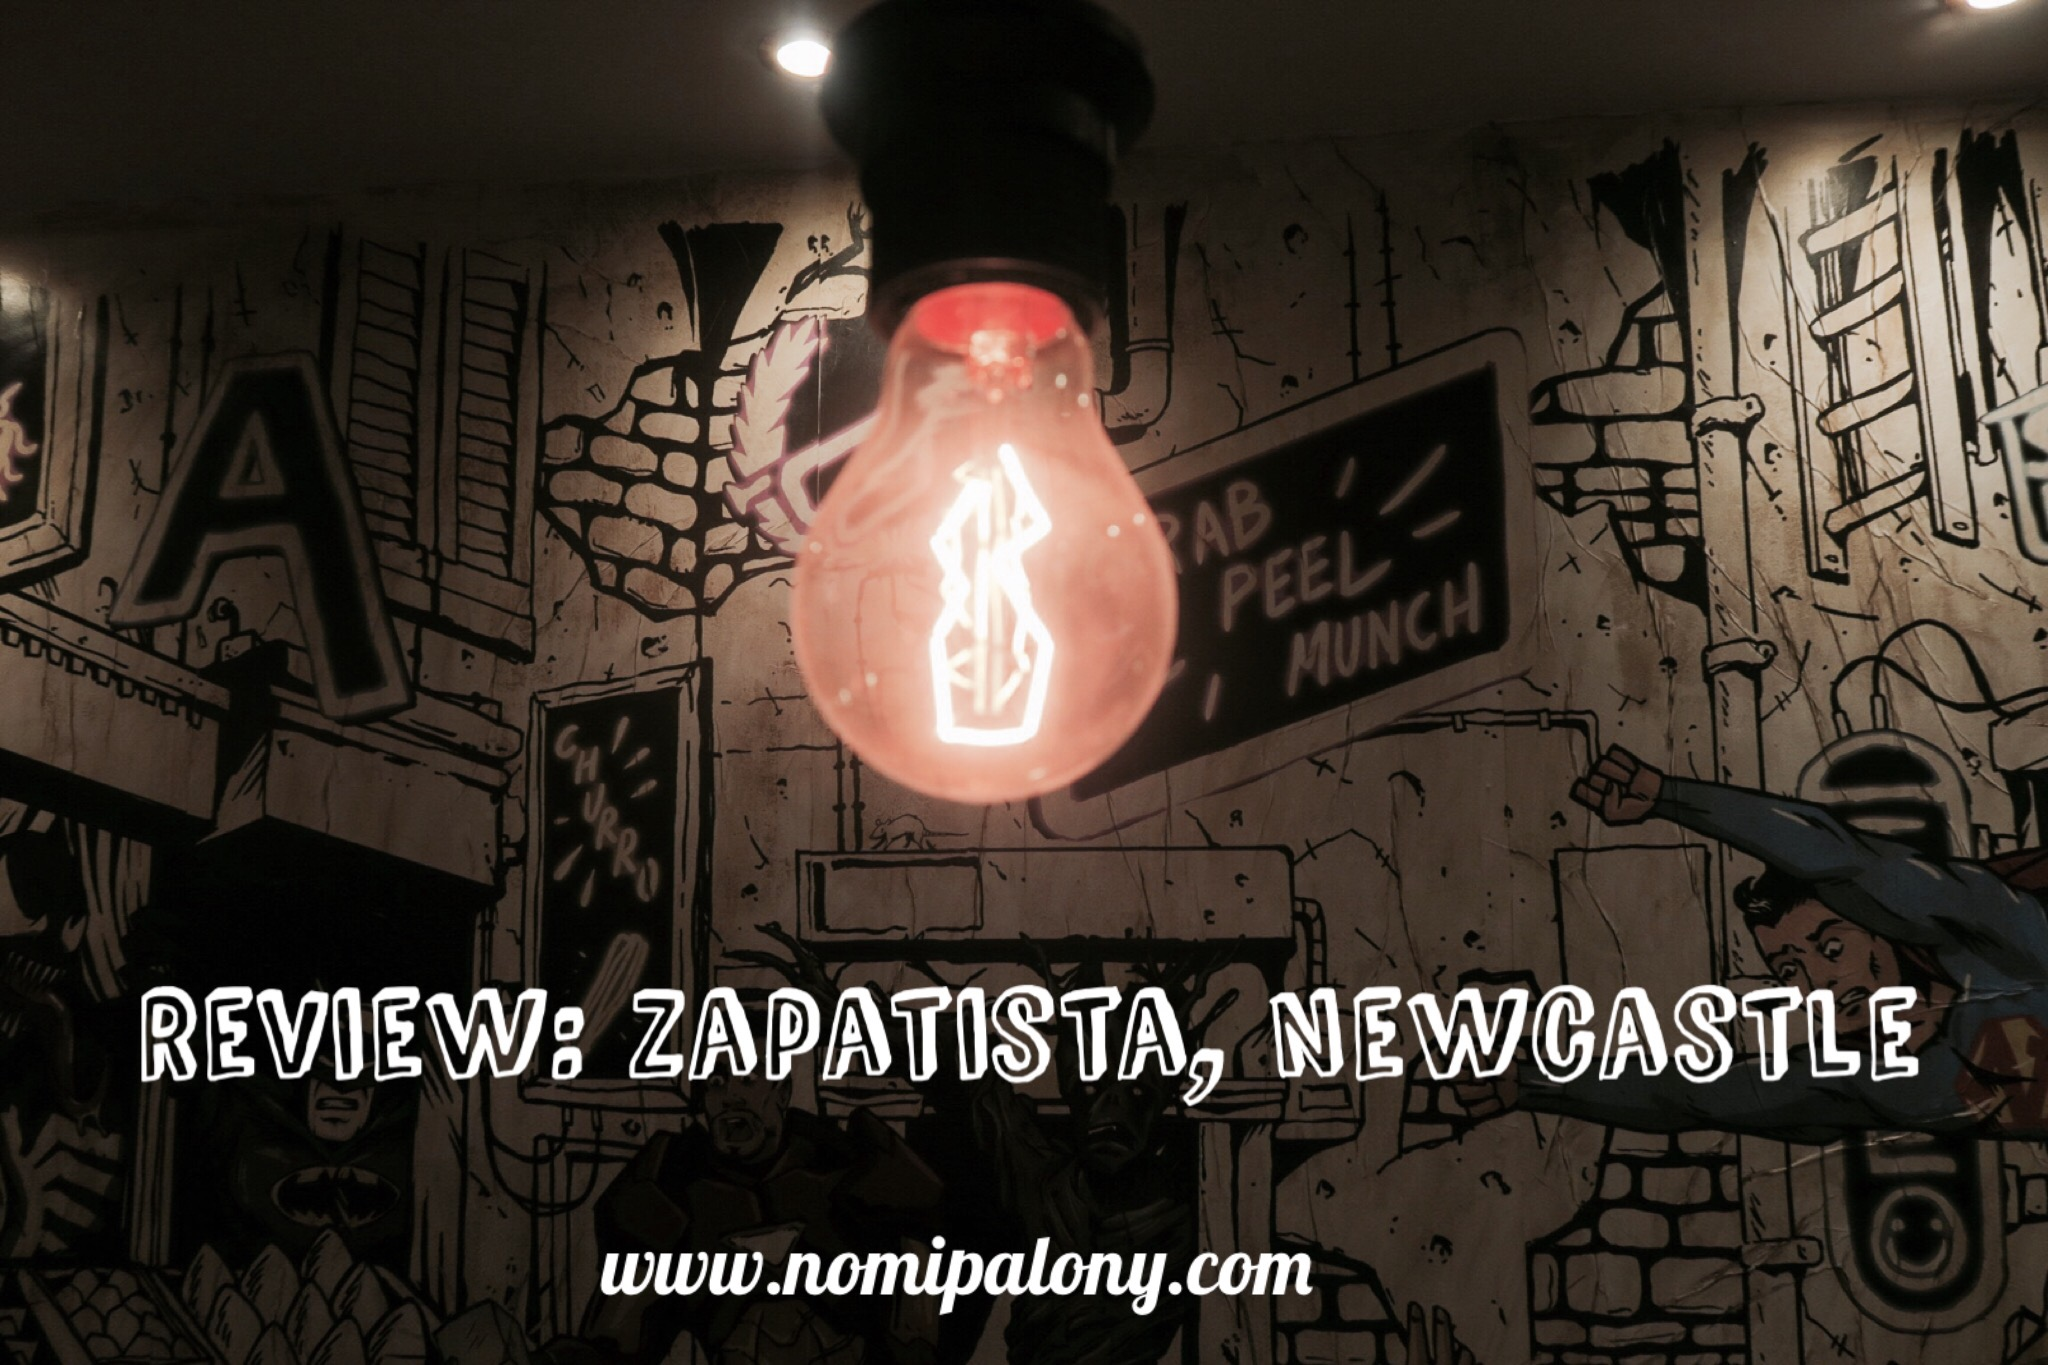 Review: Zapatista, Newcastle